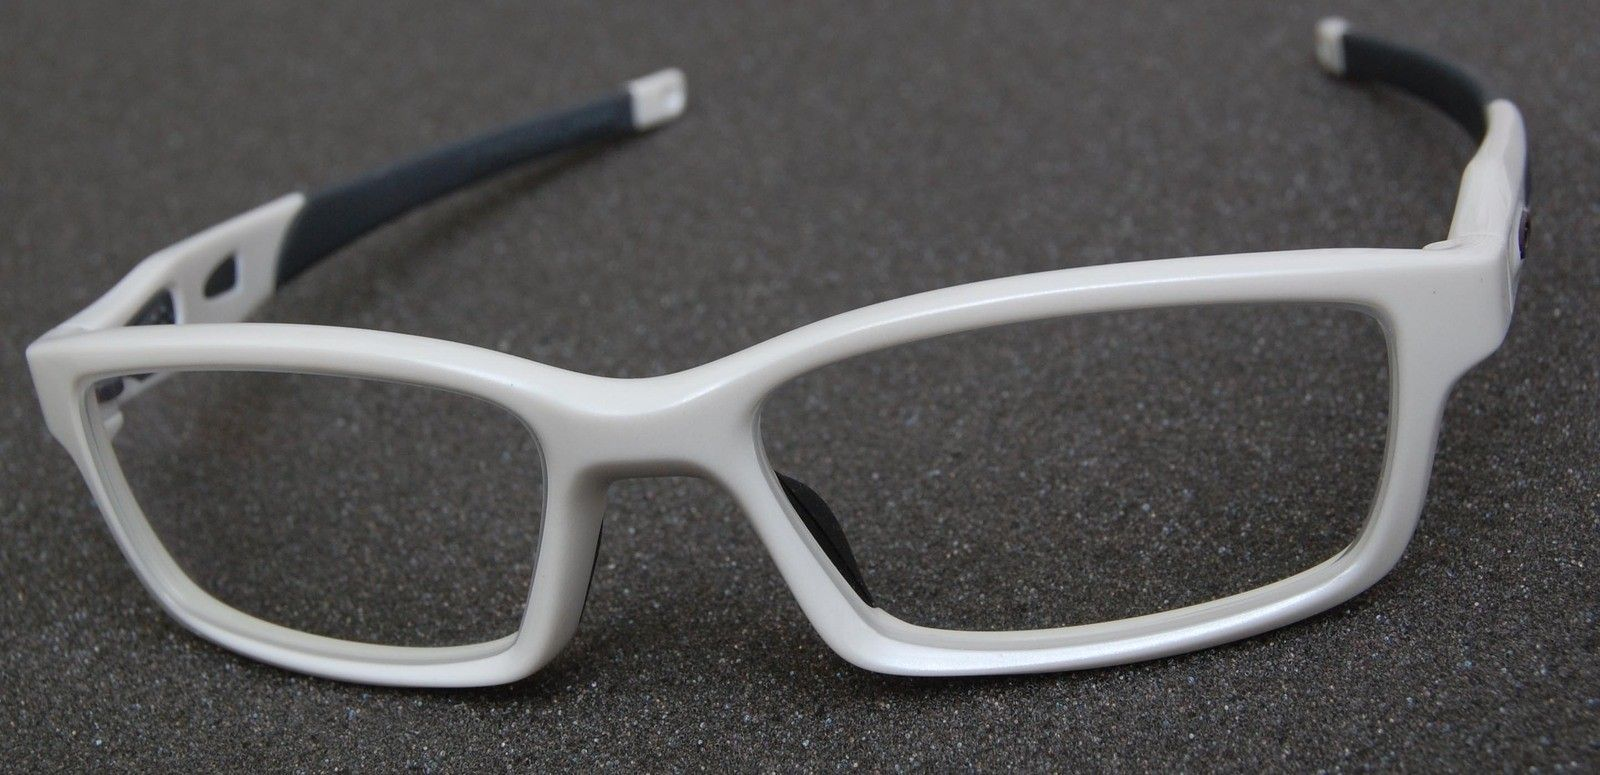 Oakley Crosslink OX8027-0453 Pearl White / Grey Rx Prescription - 02.jpg